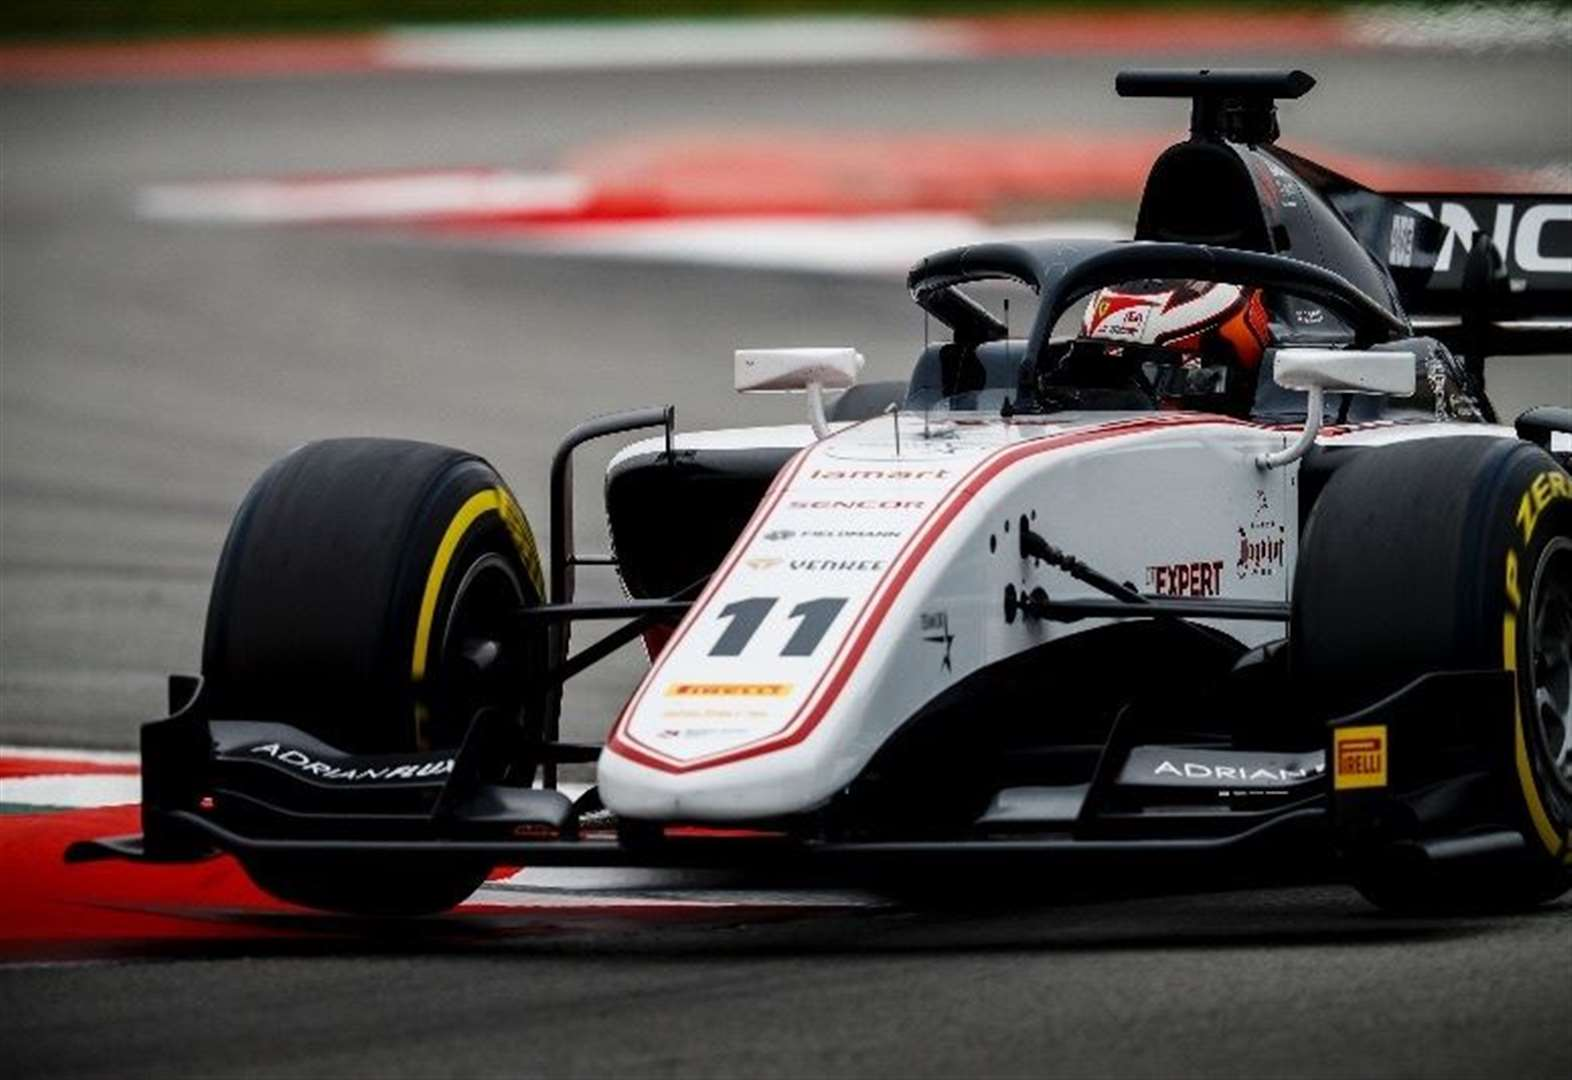 A brace of top-10 finishes for Ilott around the Hungaroring